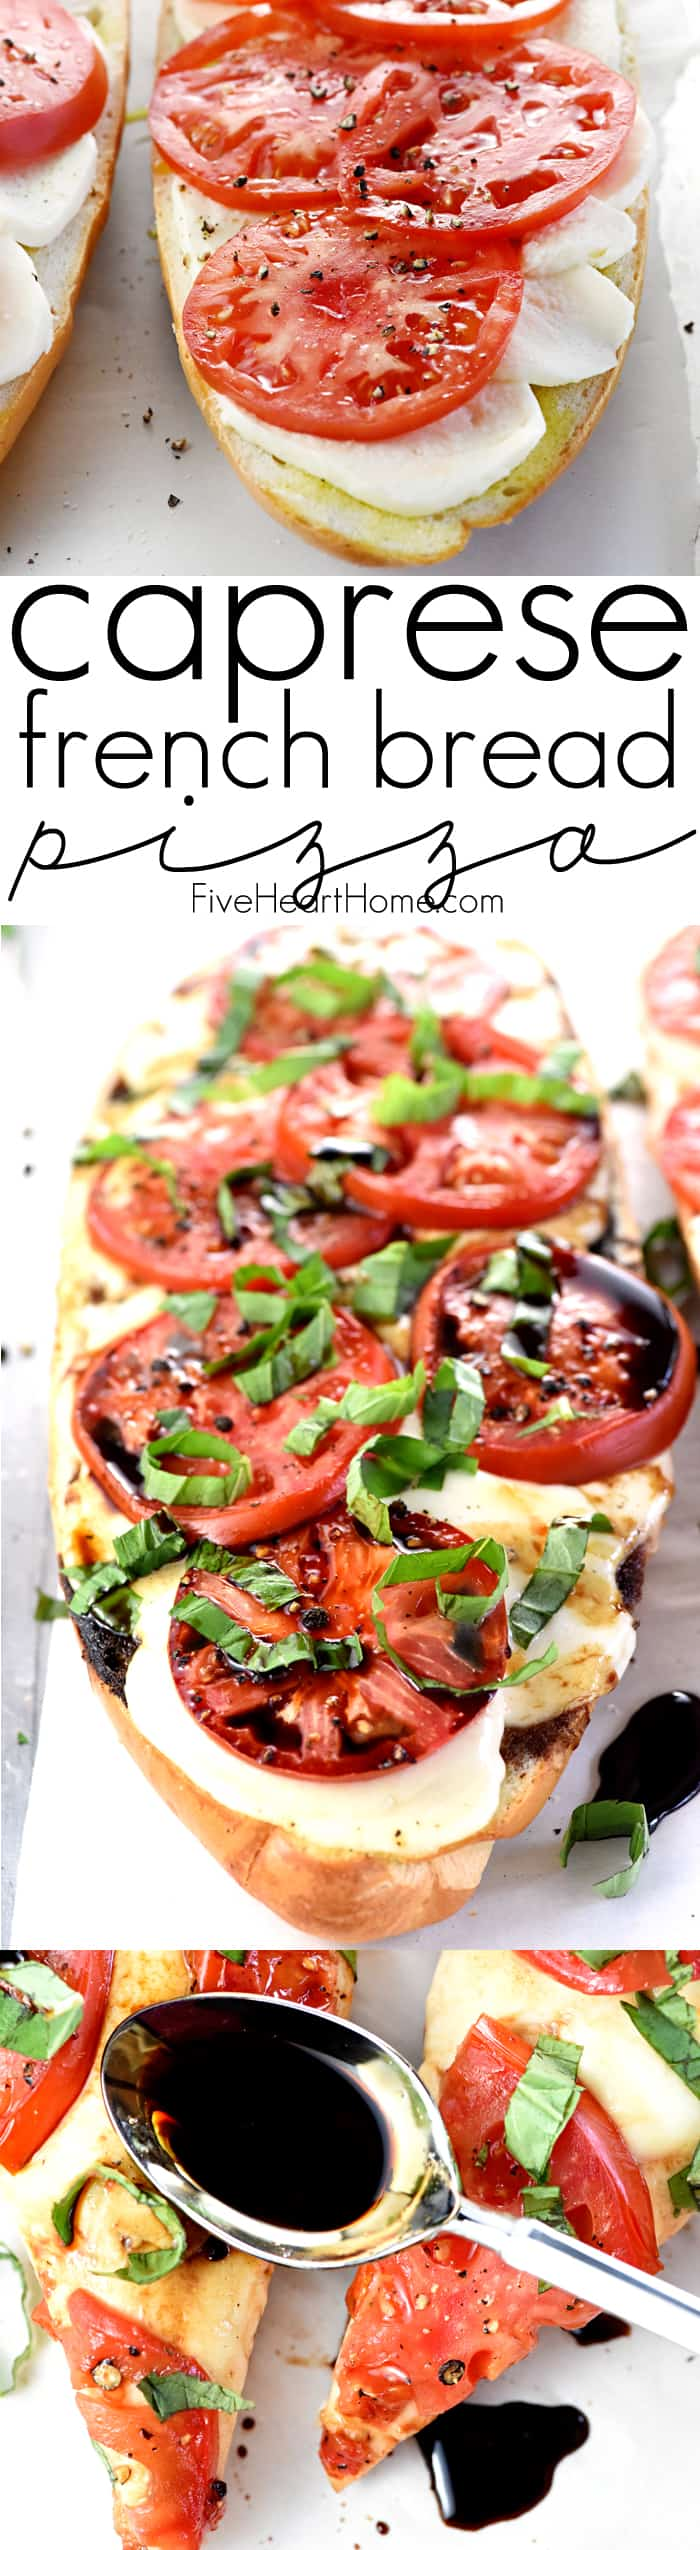 Caprese French Bread Pizza Collage with Text Overlay